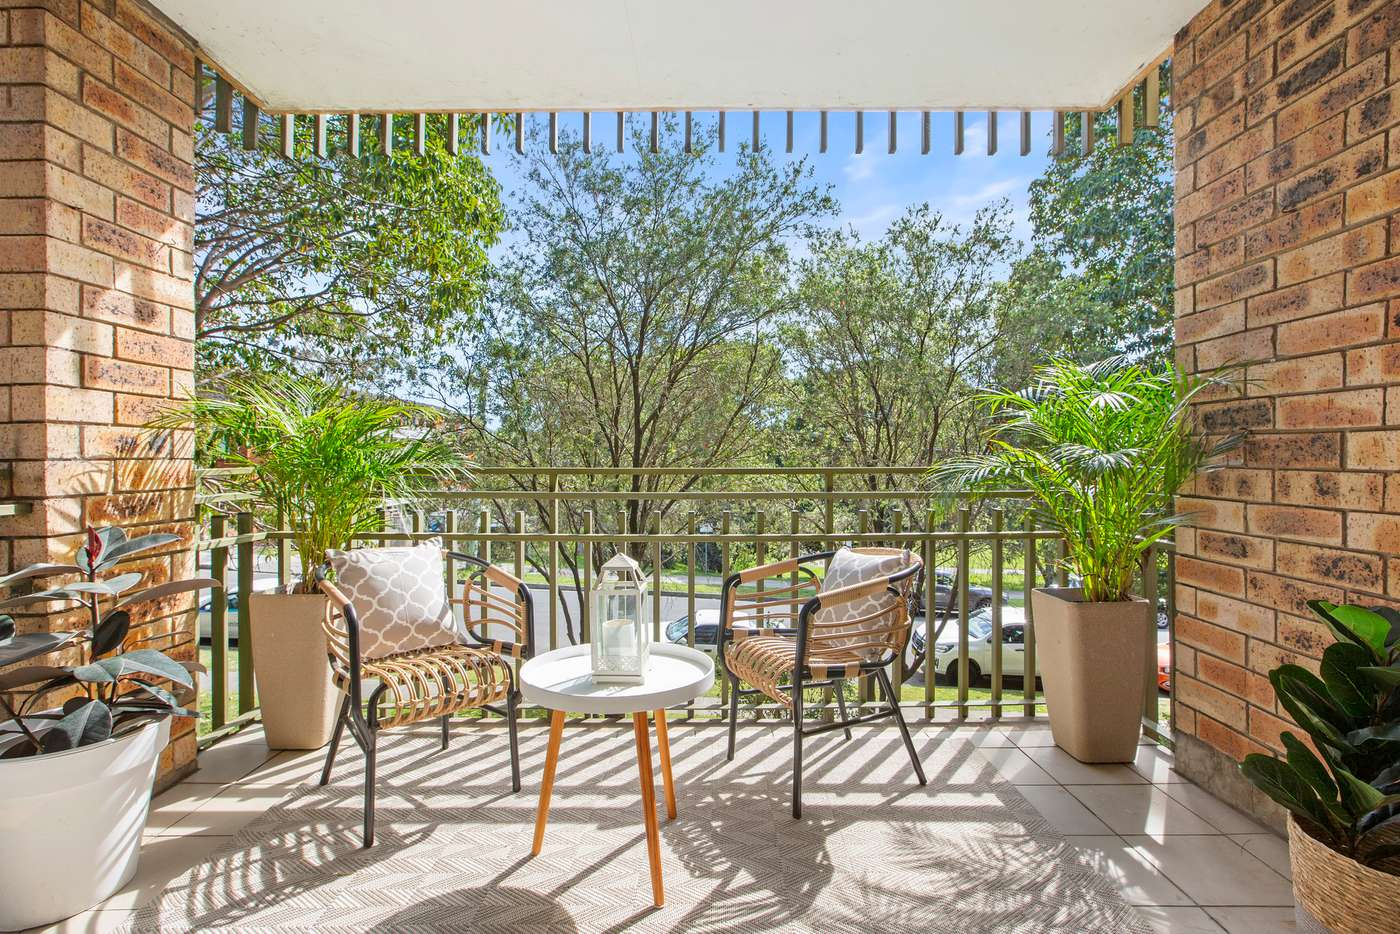 Main view of Homely apartment listing, 23/36-40 Gordon Street, Manly Vale NSW 2093